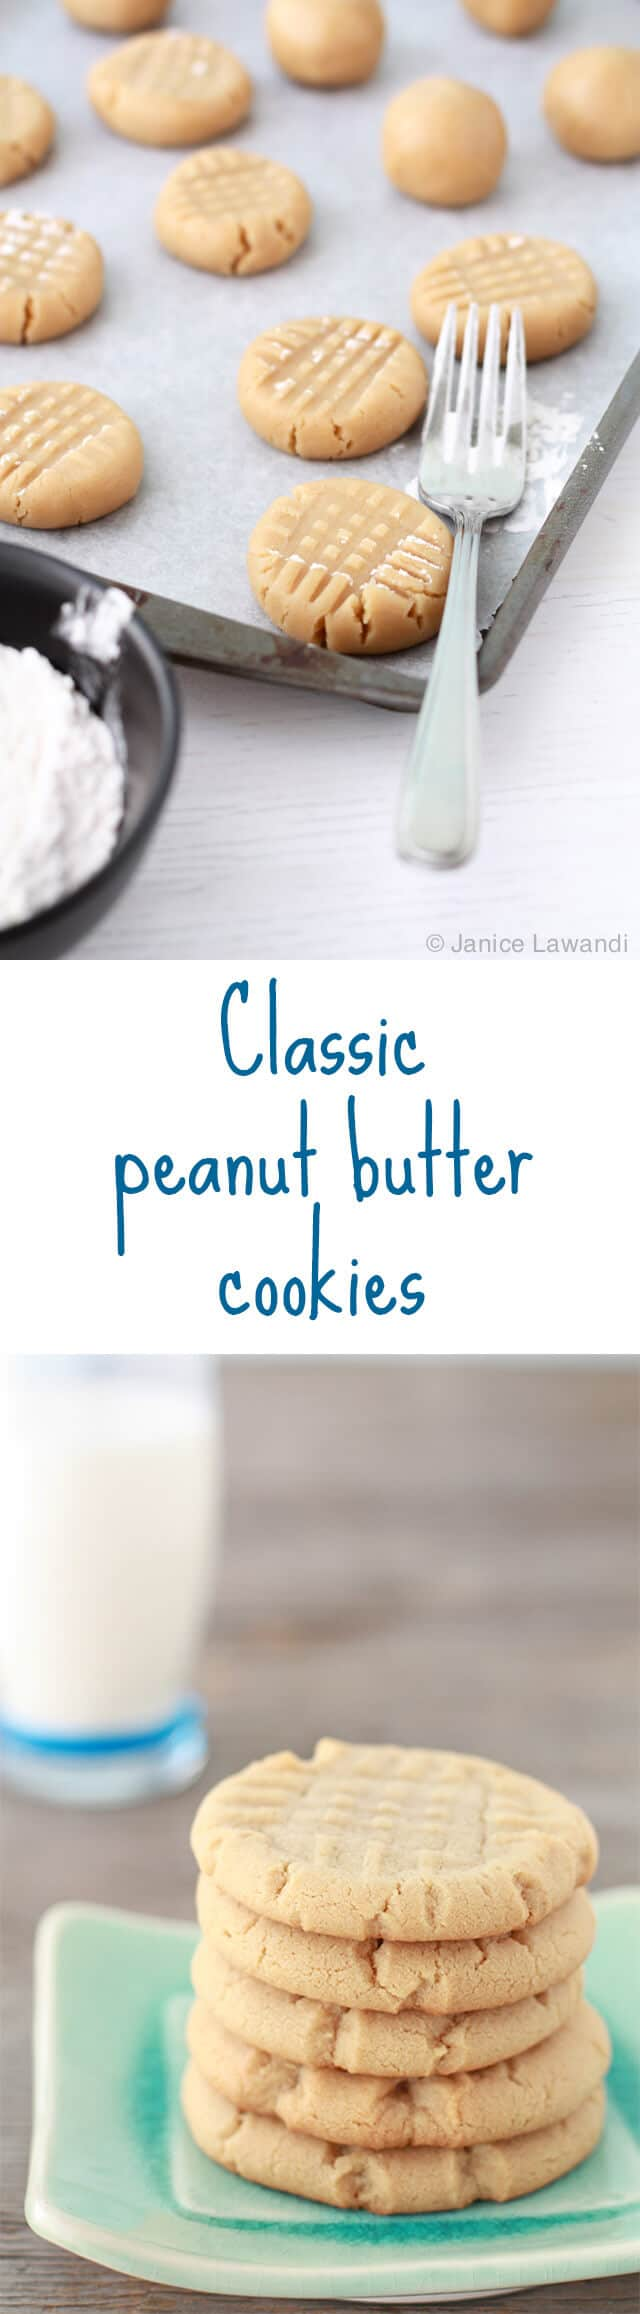 Classic peanut butter cookies made with natural peanut butter and pressed with a fork for the signature criss-cross pattern